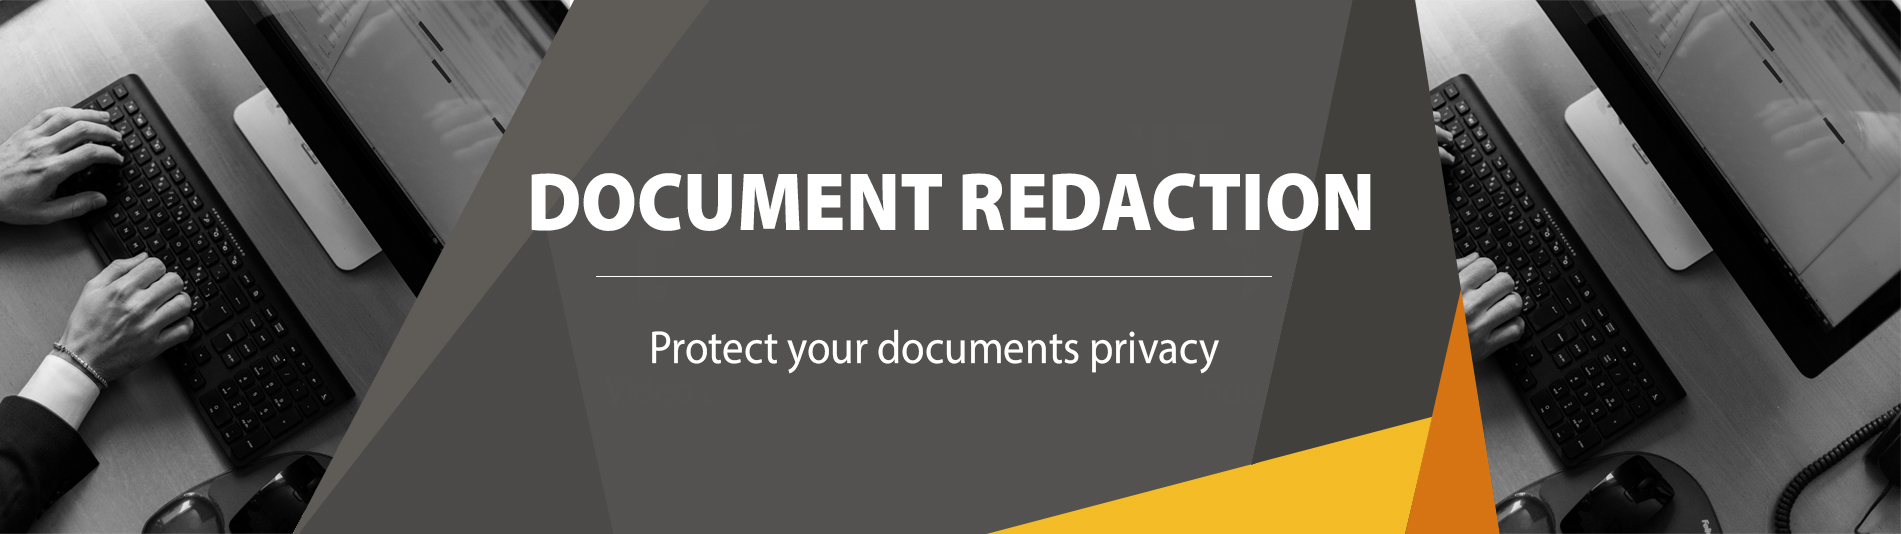 Document Redaction Privacy Protection